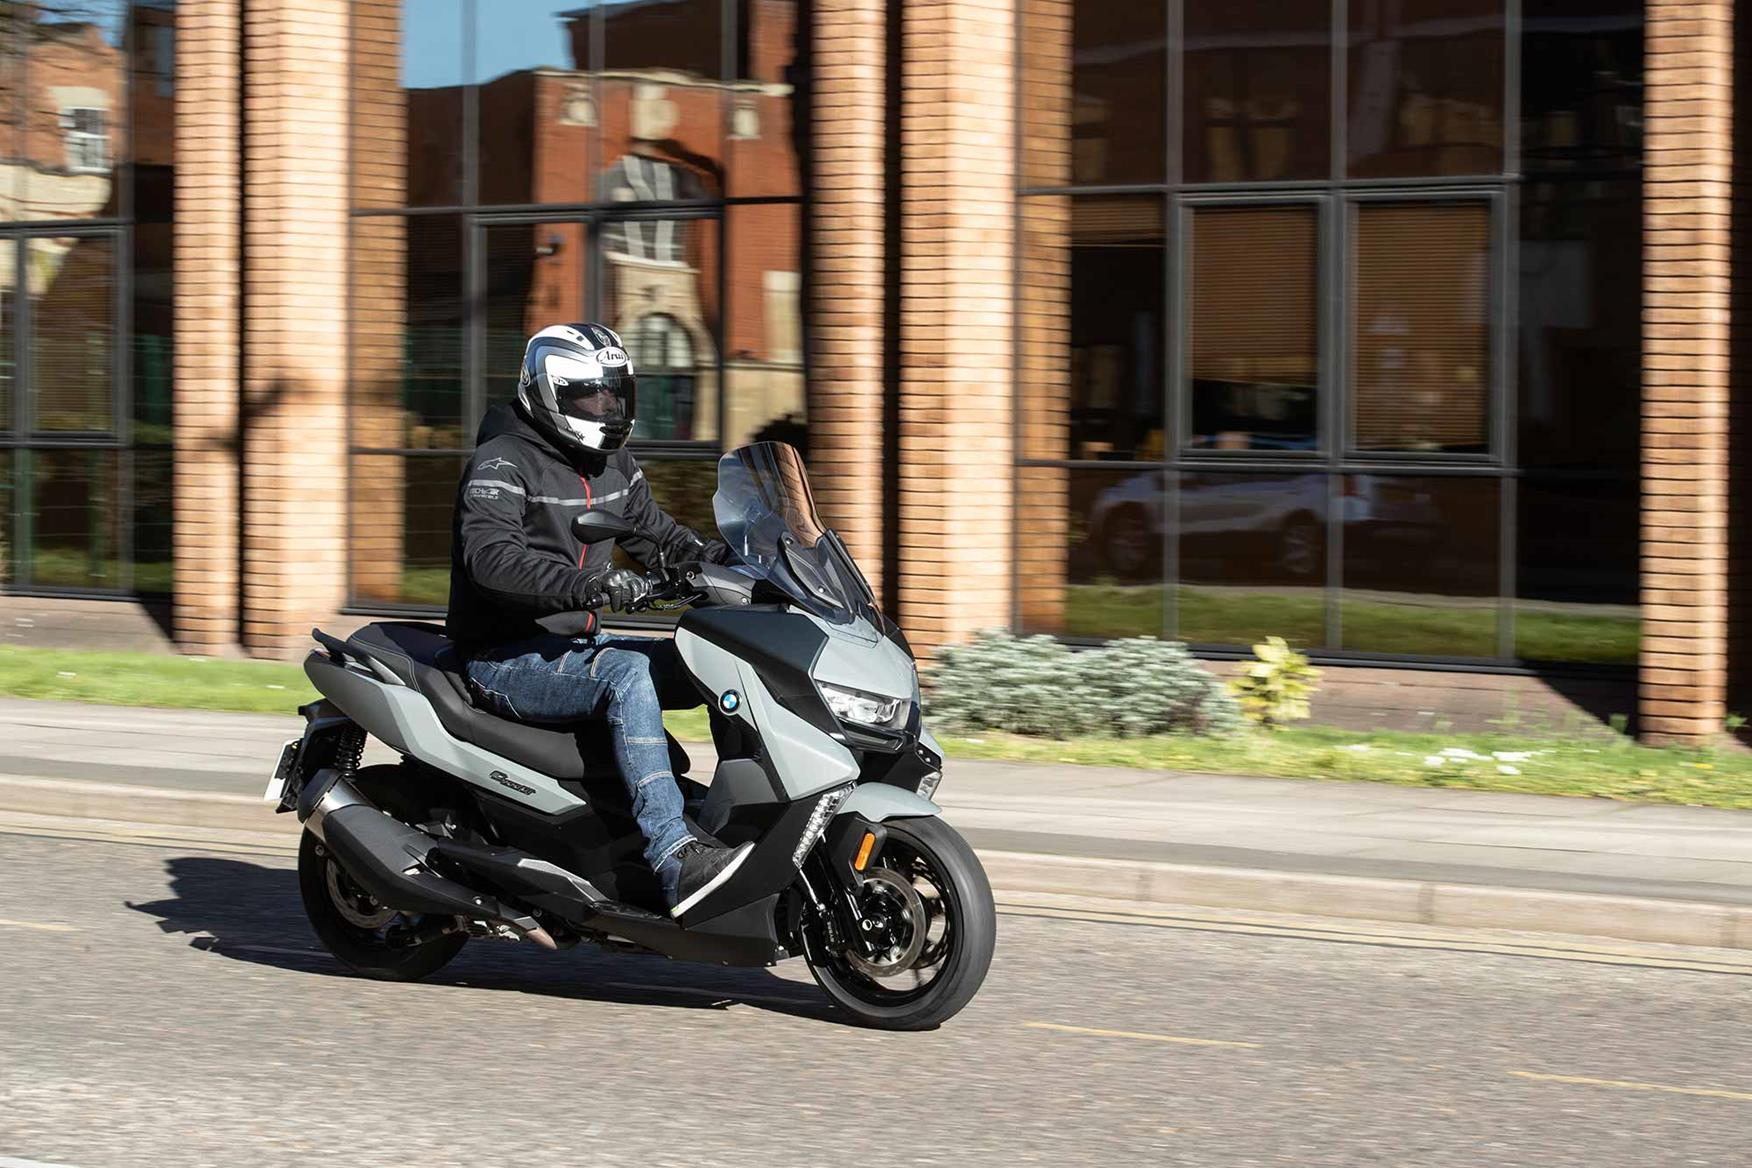 Riding in town on the BMW C400GT